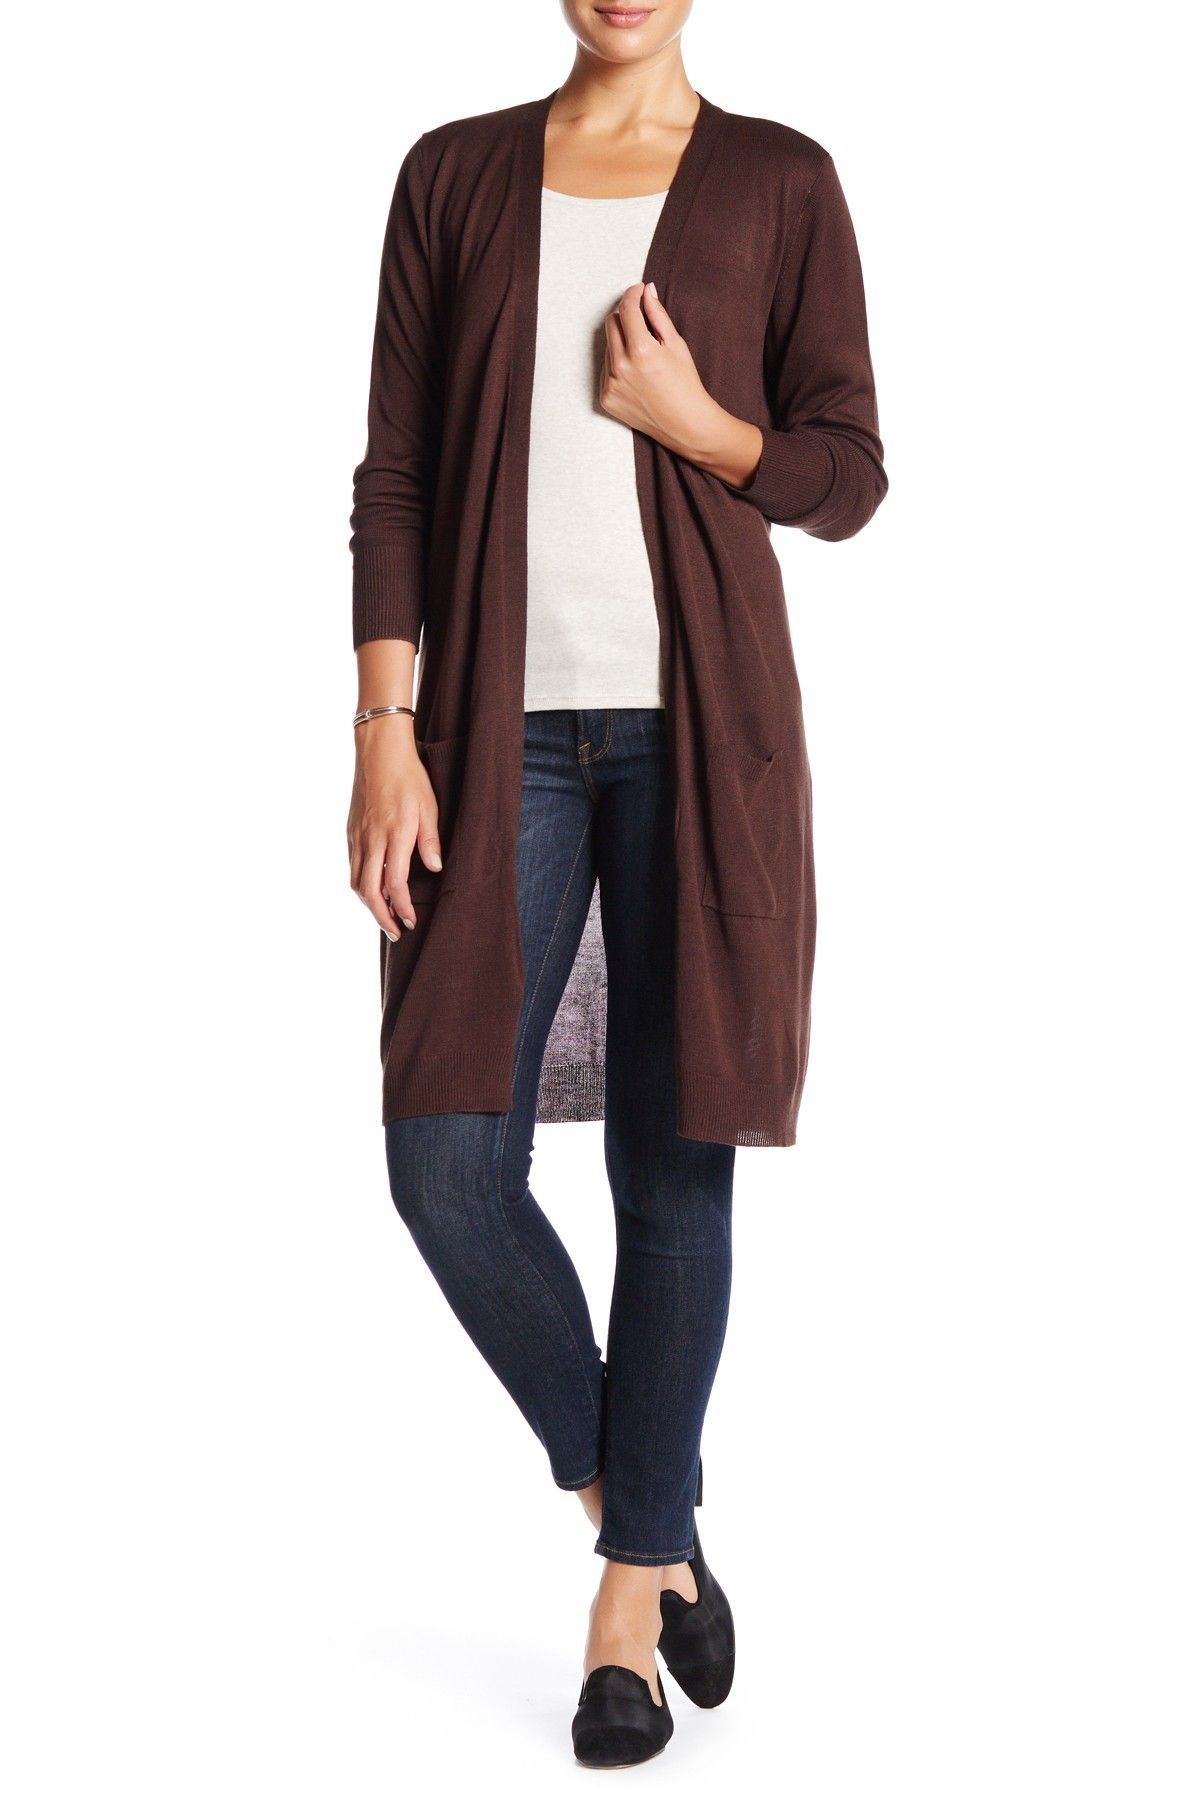 JOSEPH A | Knit Longline Cardigan | Dusters, Nordstrom and Free ...